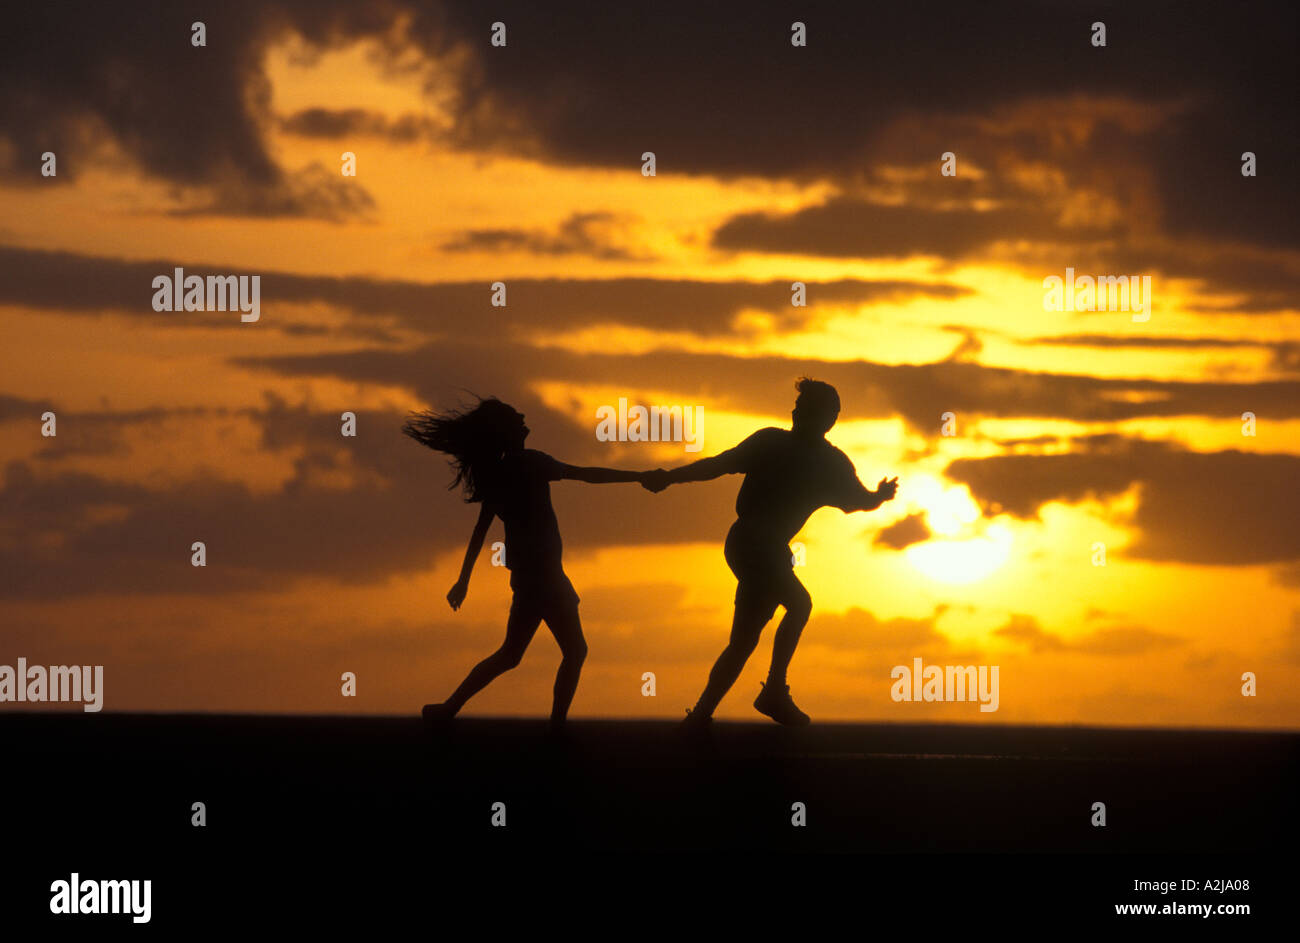 Man and woman running together playfully outdoors silhouetted against a golden sky Stock Photo